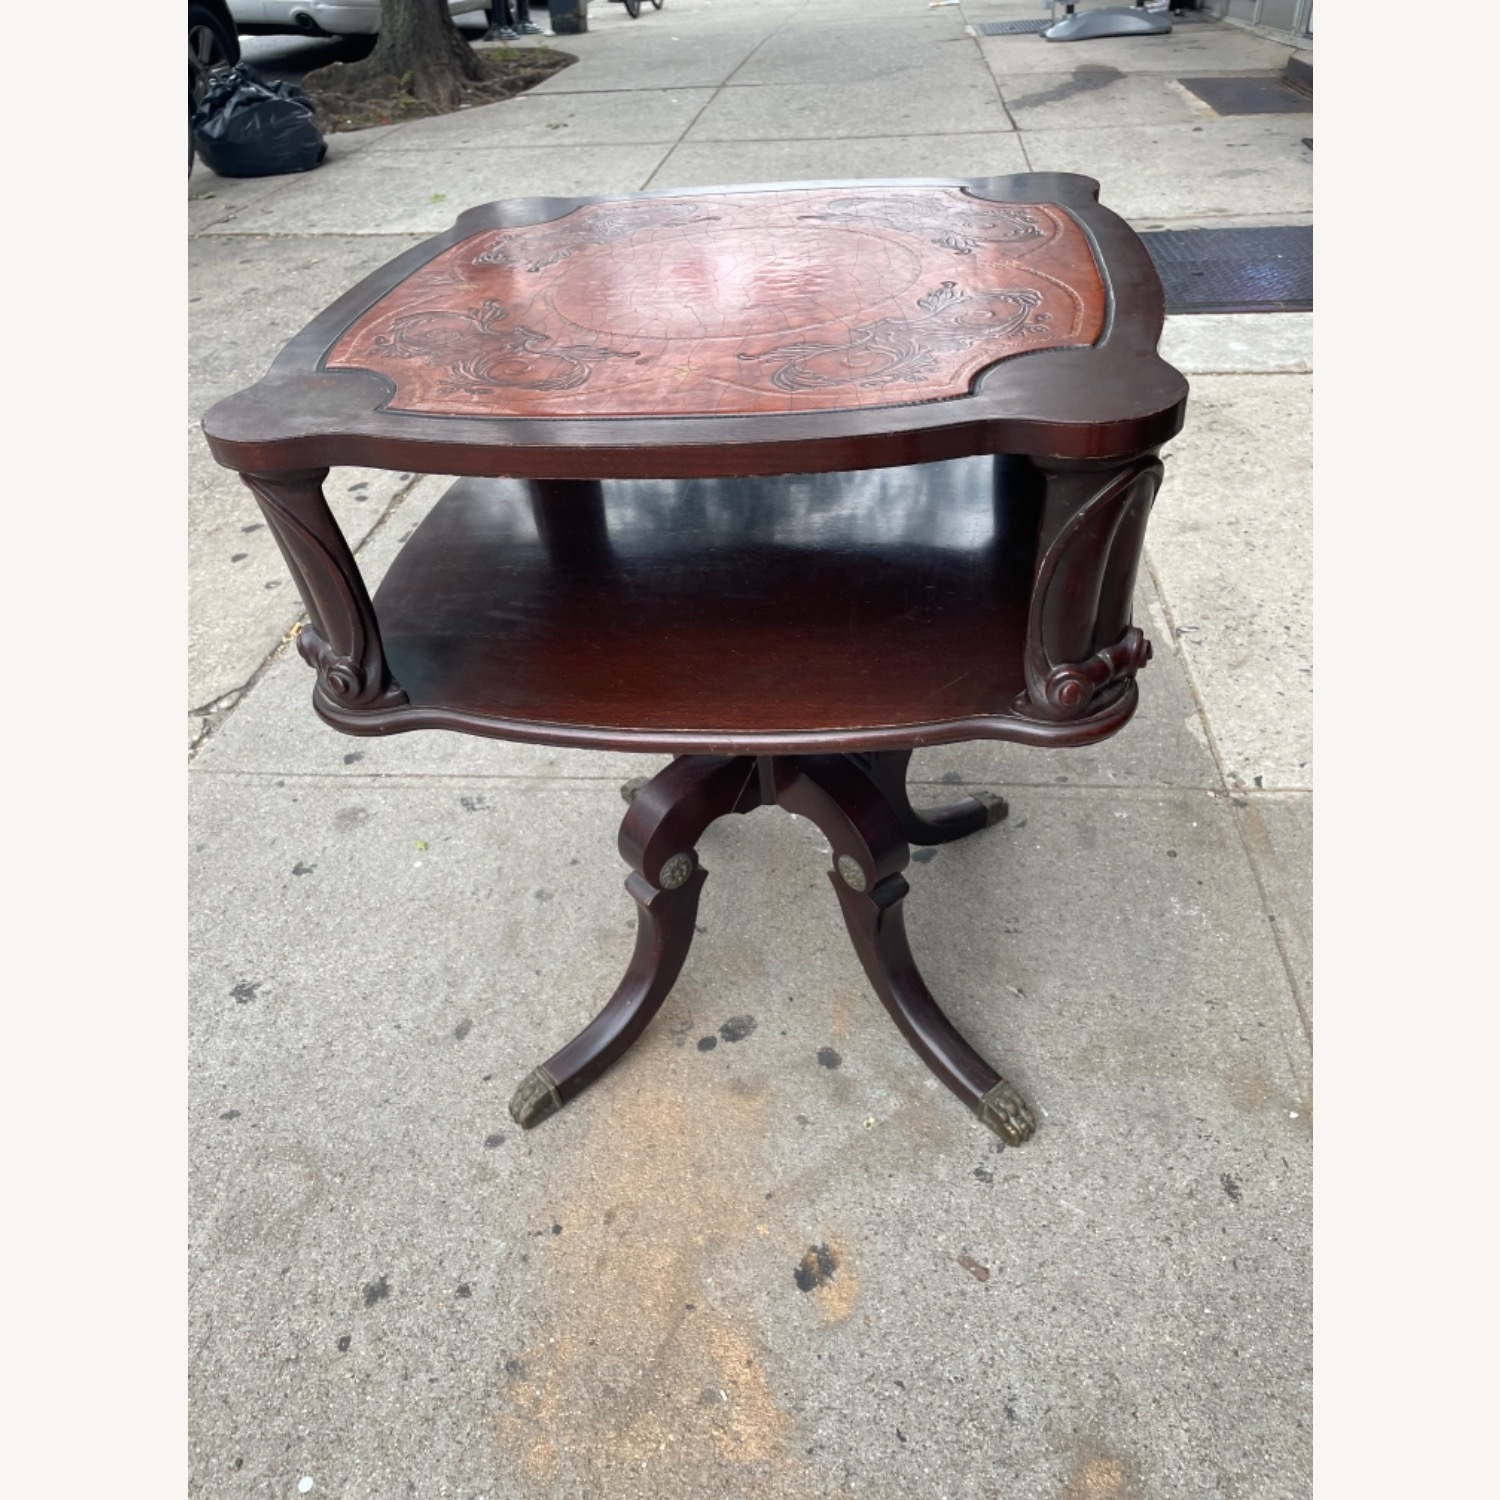 Adams Always 1930s Decorative Leather Top Table - image-24